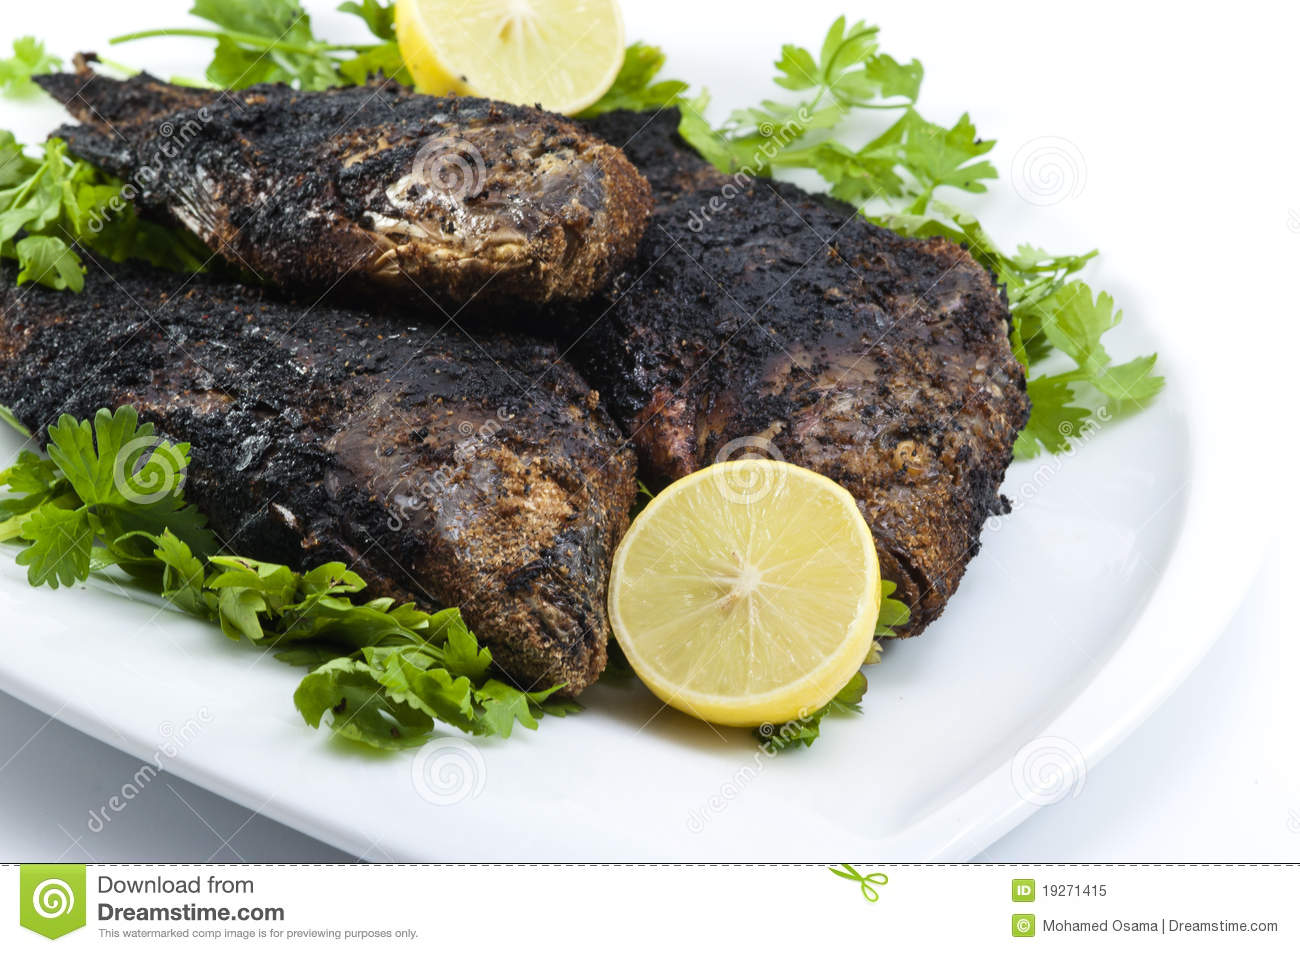 Grilled Whole Tilapia Egyptian nile tilapia grilled